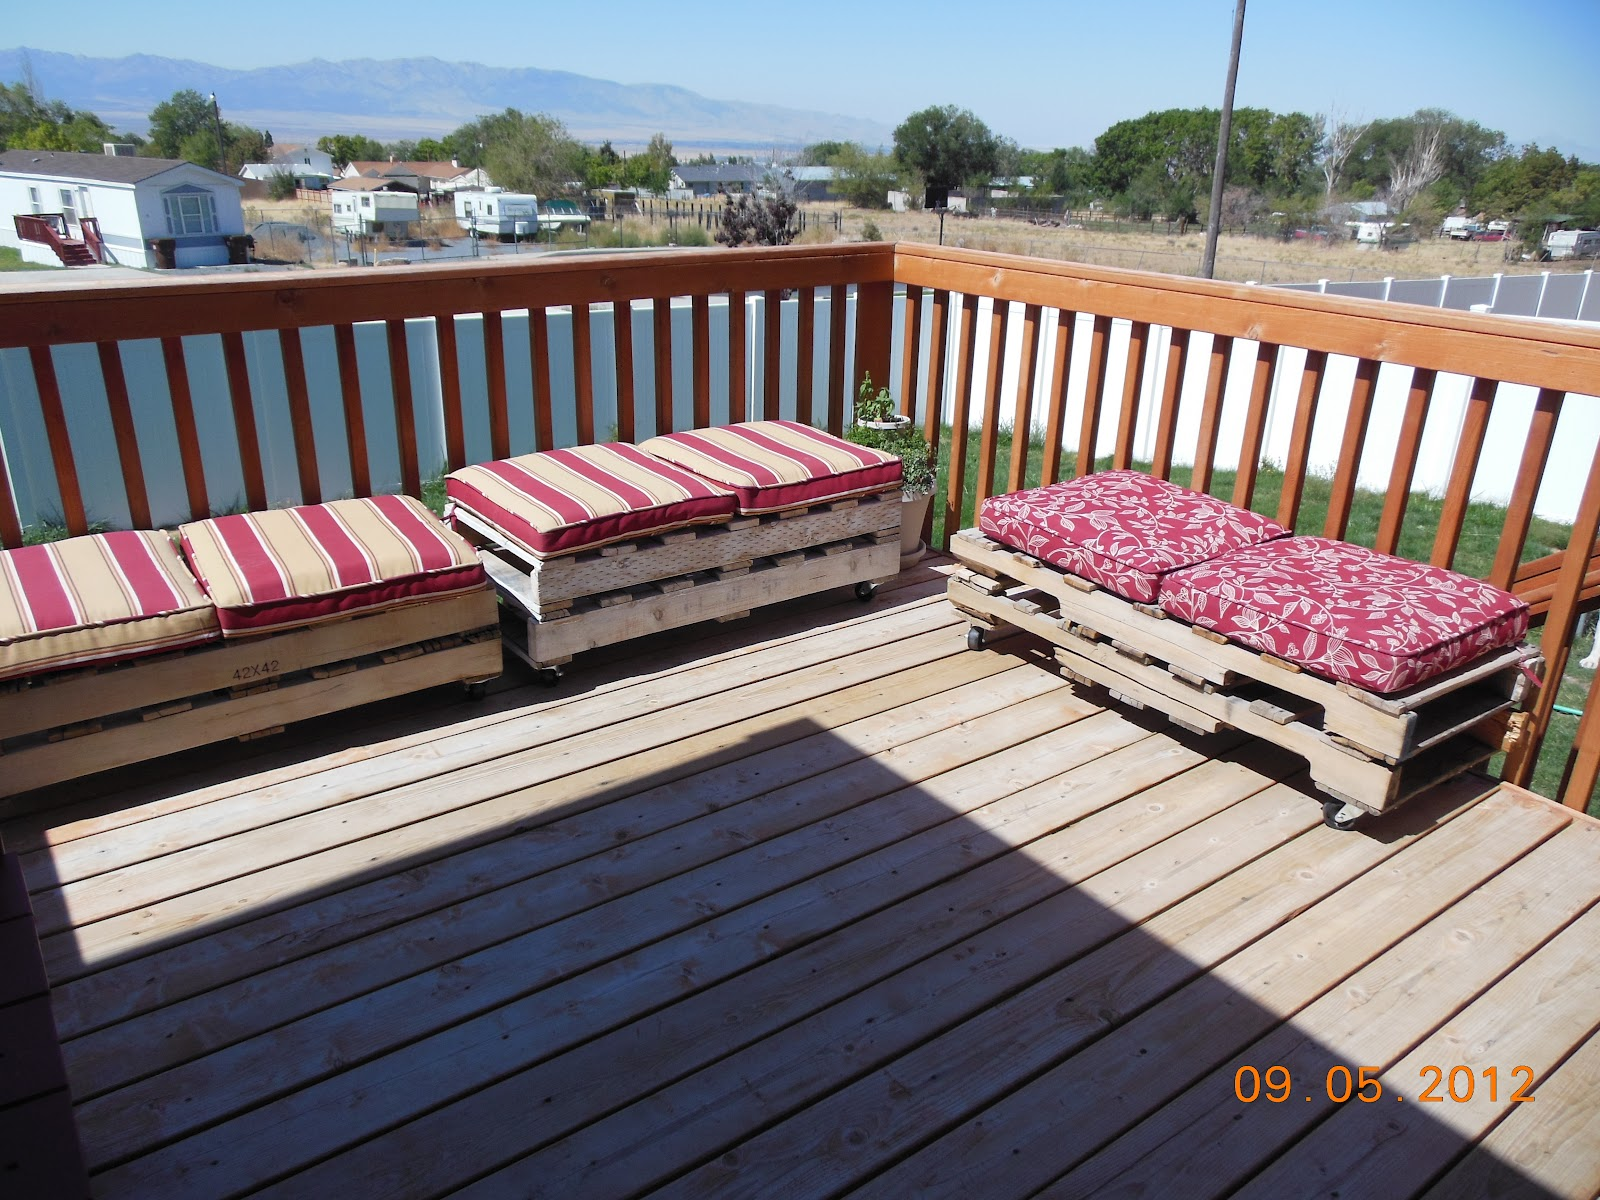 Patio Furniture Made with Pallets http://4growingboys.blogspot.com/2012/09/pallet-patio-furniture.html